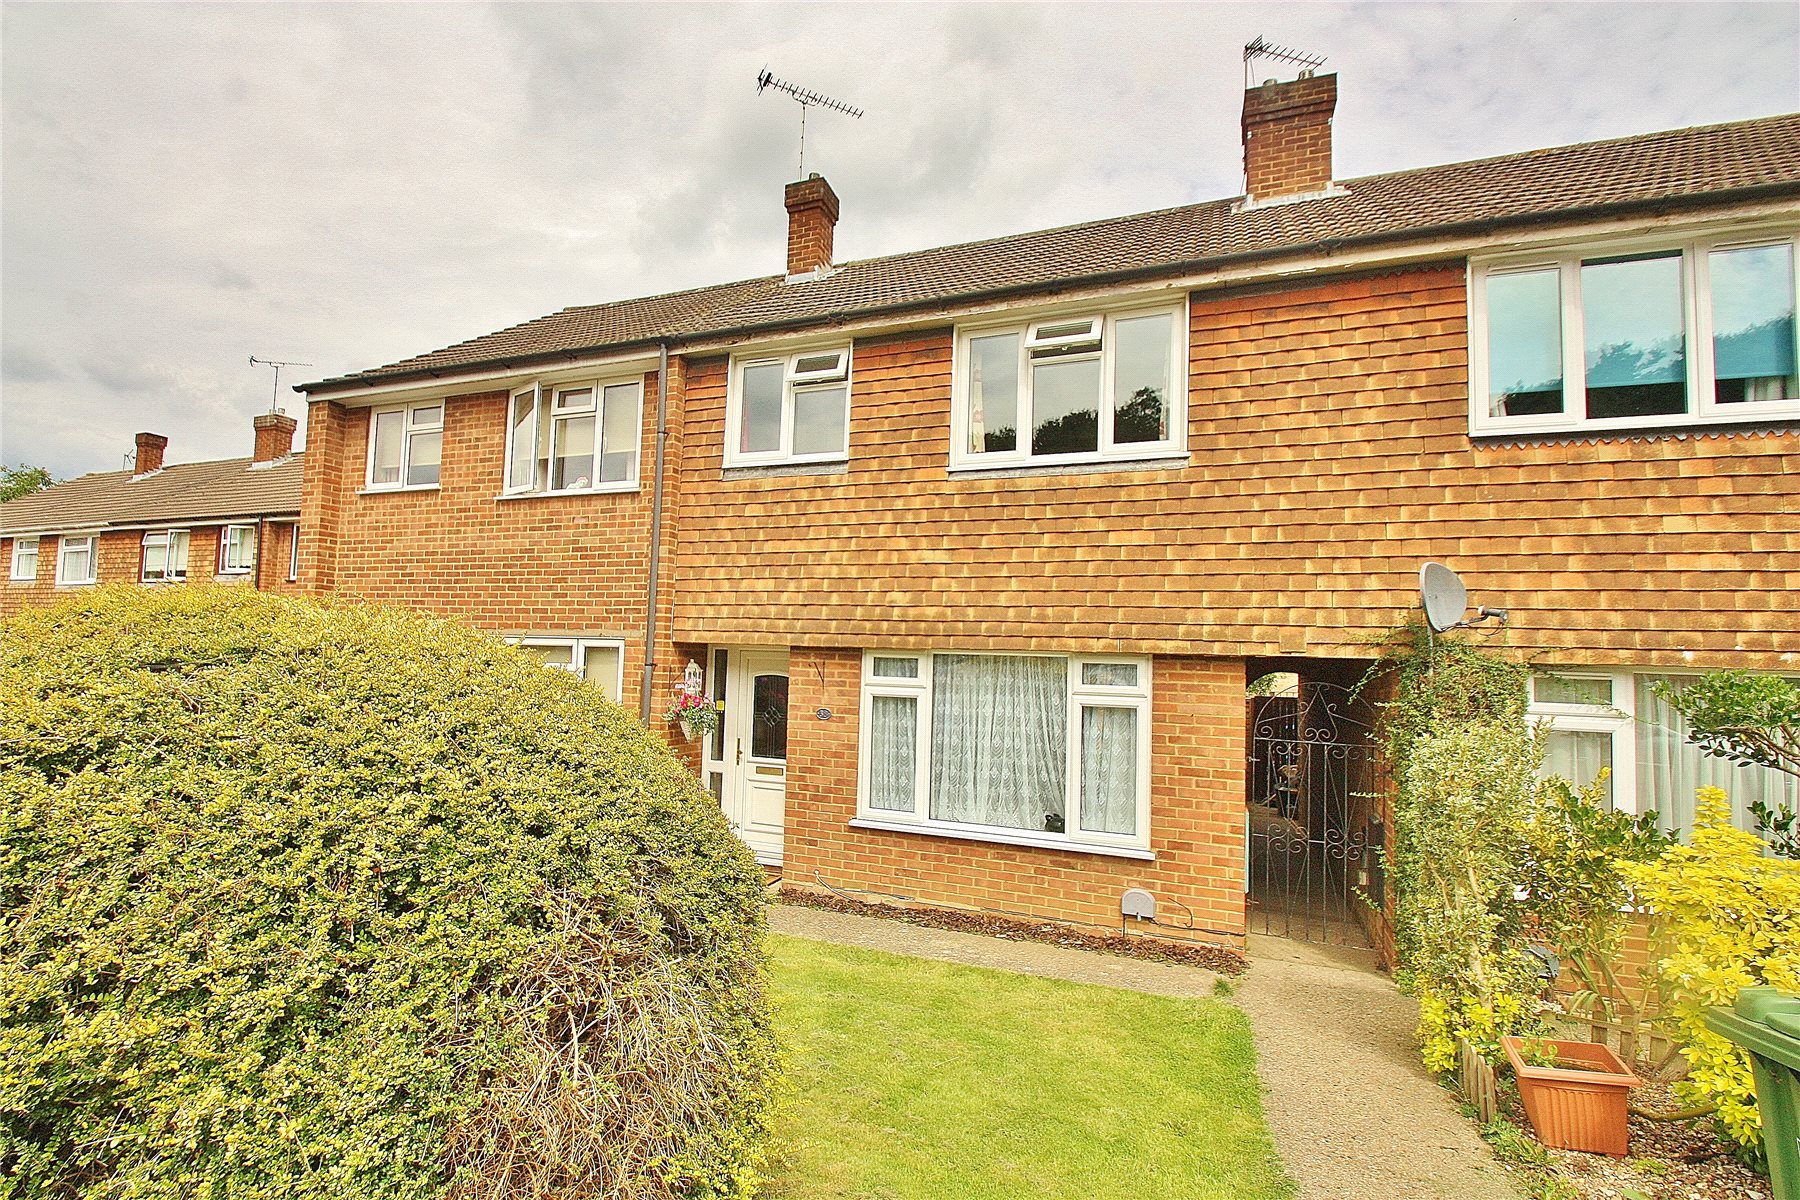 3 Bedrooms Terraced House for sale in Robin Hood Crescent, Knaphill, Woking, Surrey, GU21